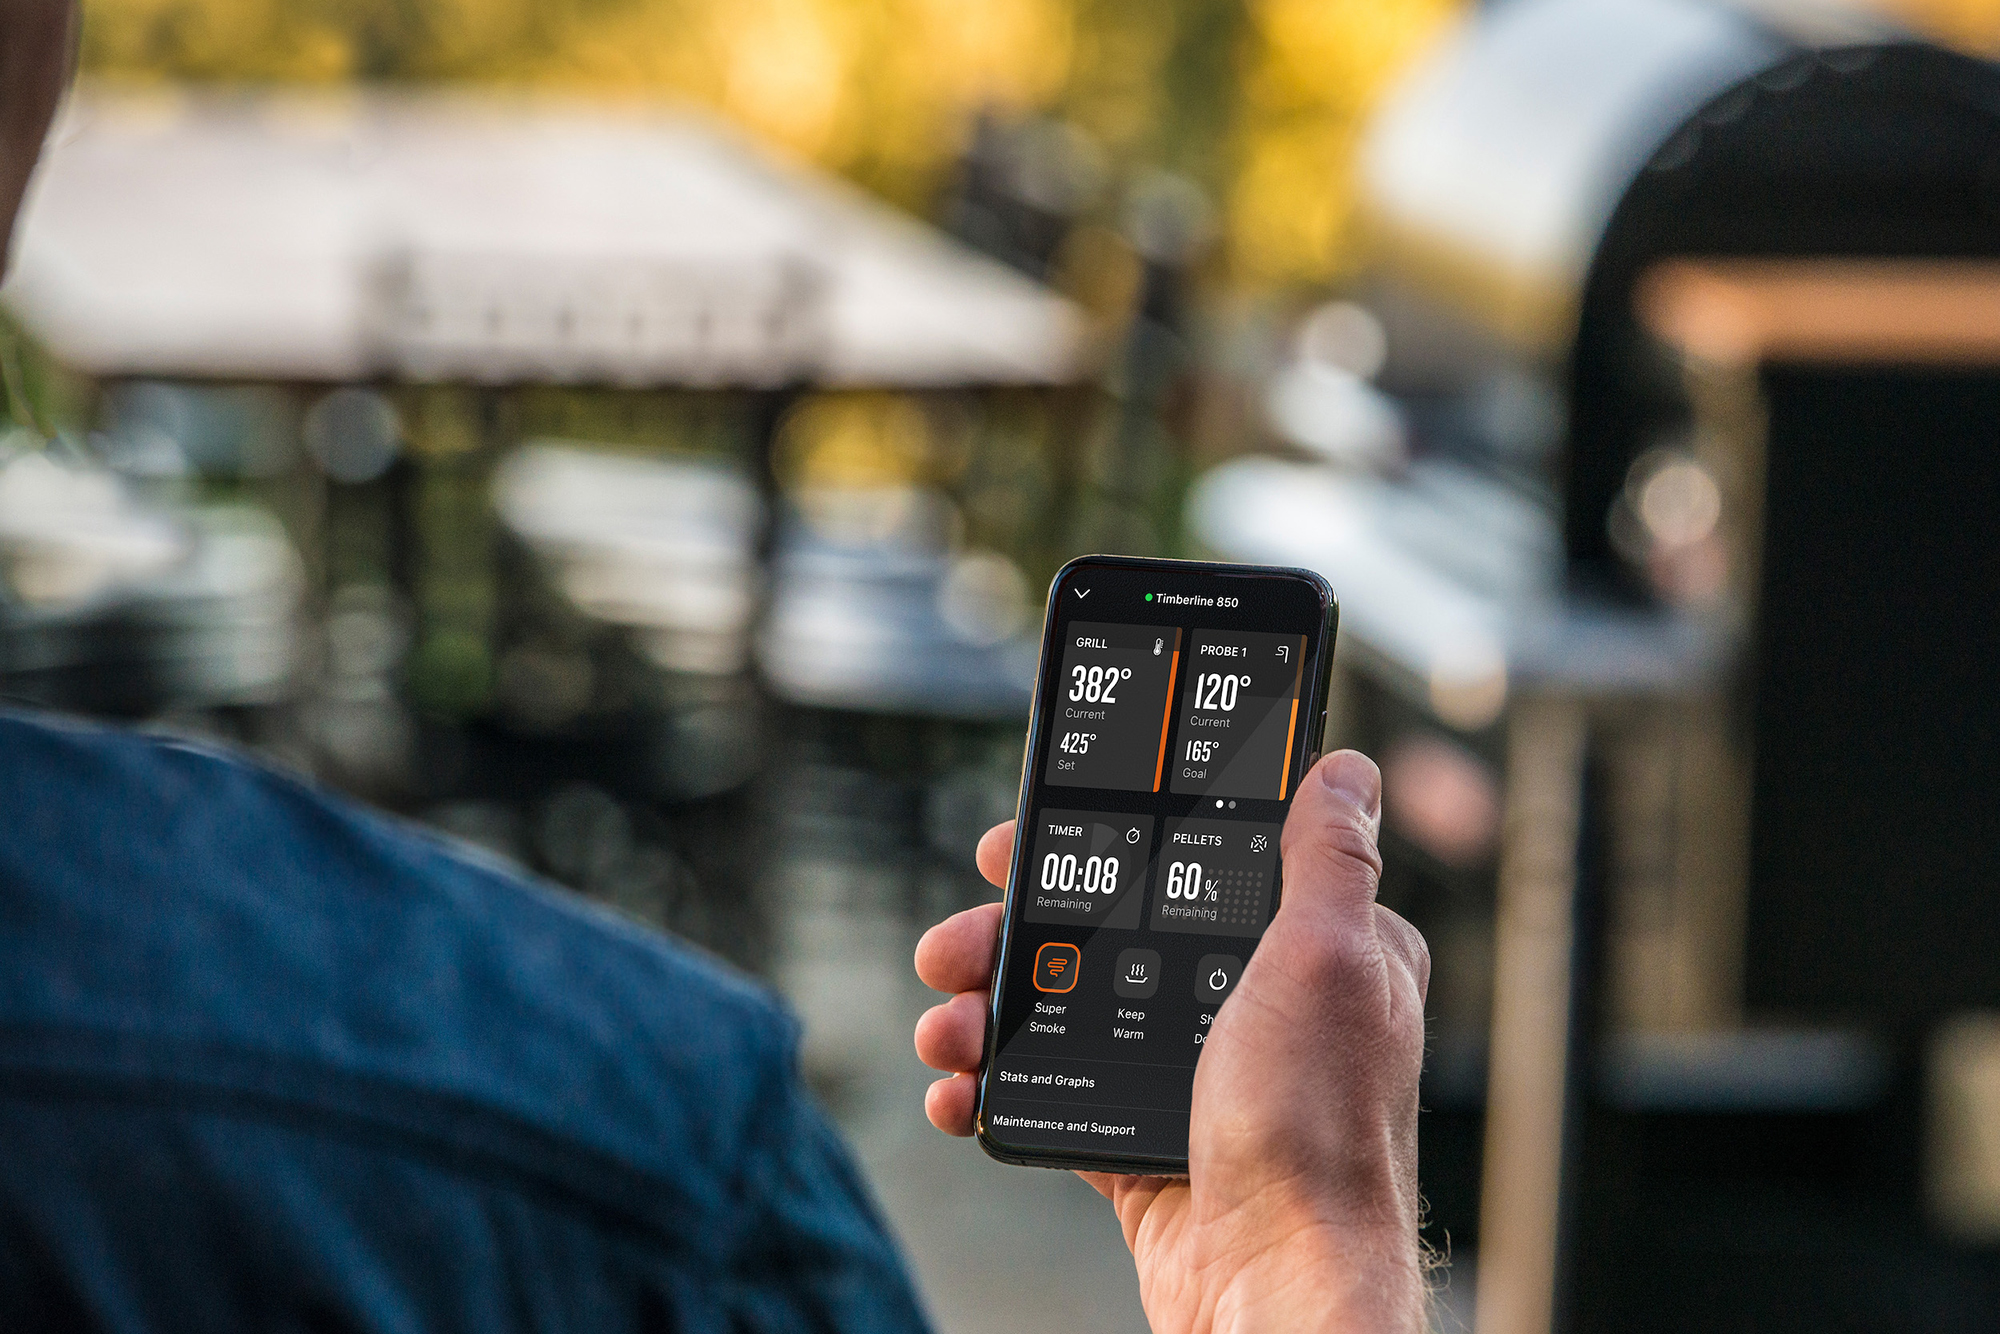 Traeger pellet grill mobile phone application screen in action